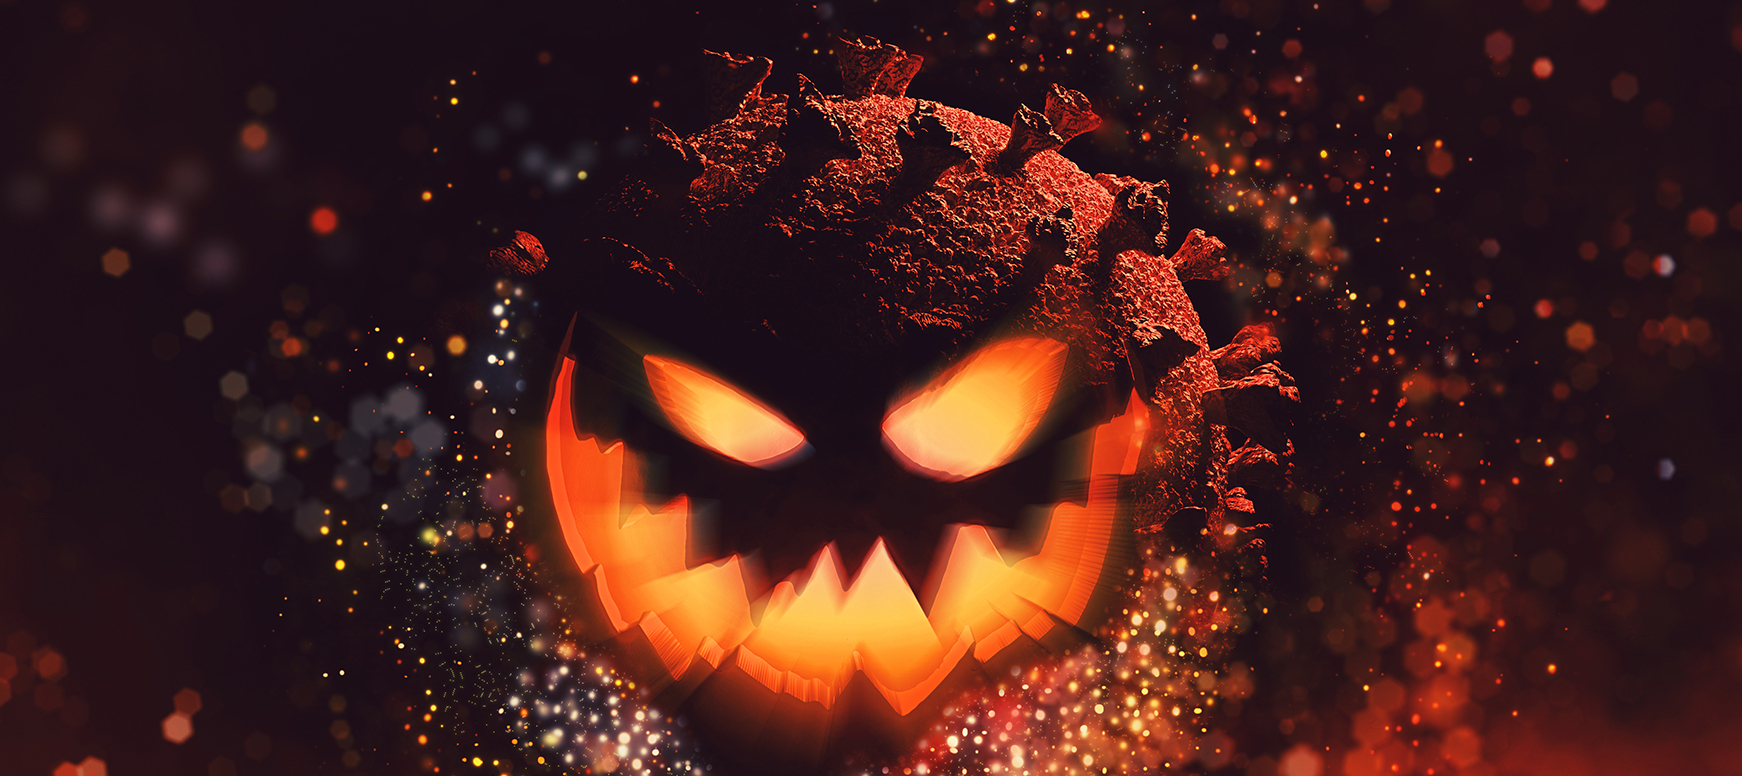 Happy Scary Halloween! Halloween cards and wallpapers.